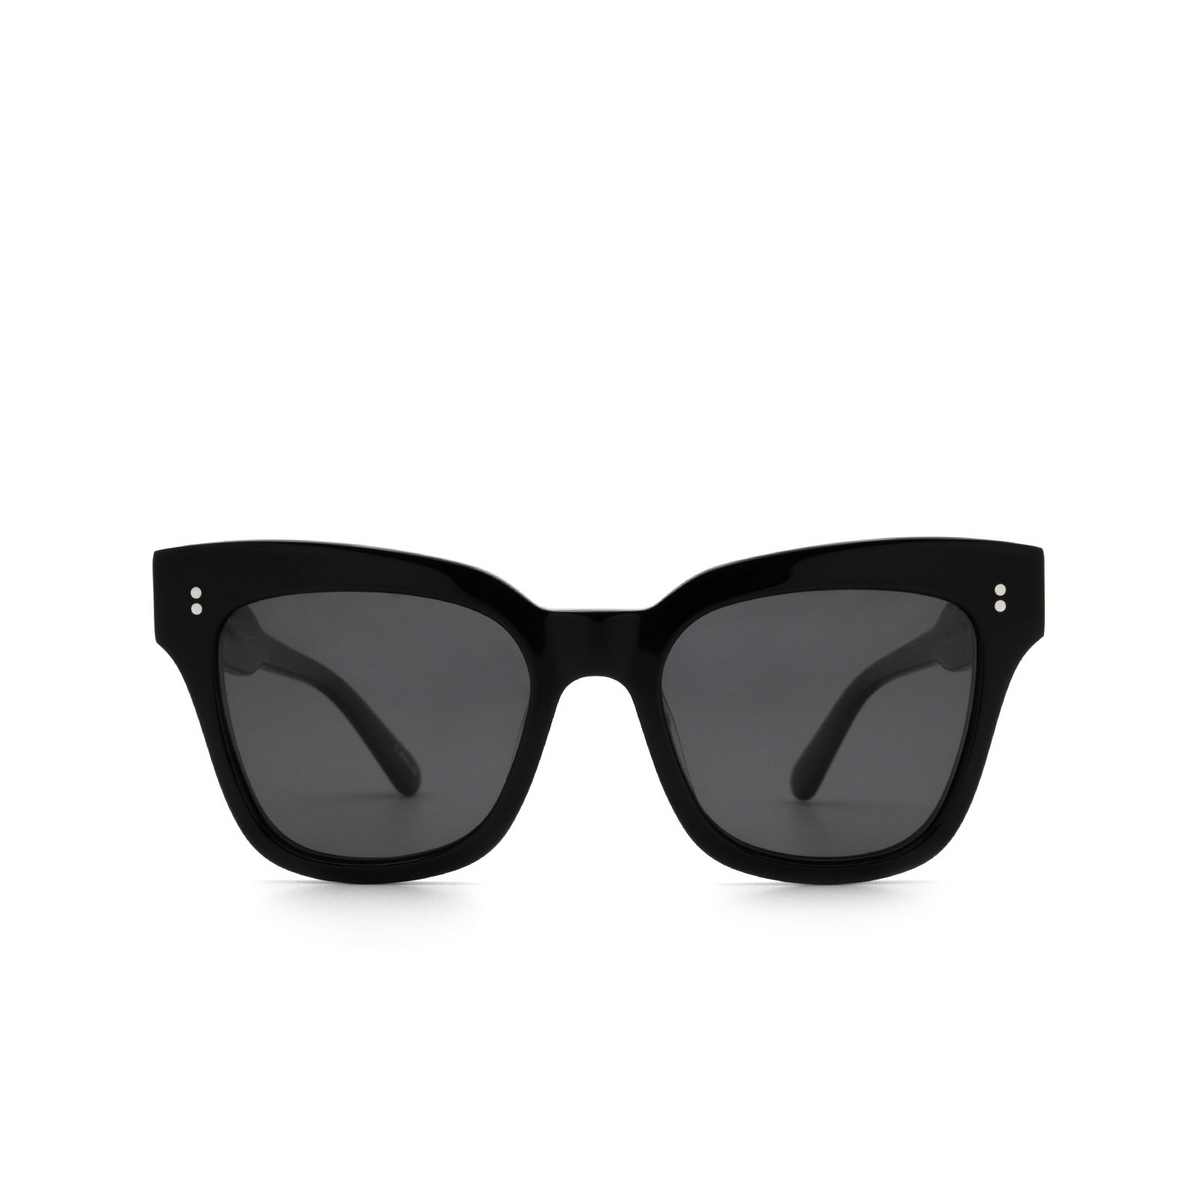 Chimi® Butterfly Sunglasses: 07 color Black - front view.